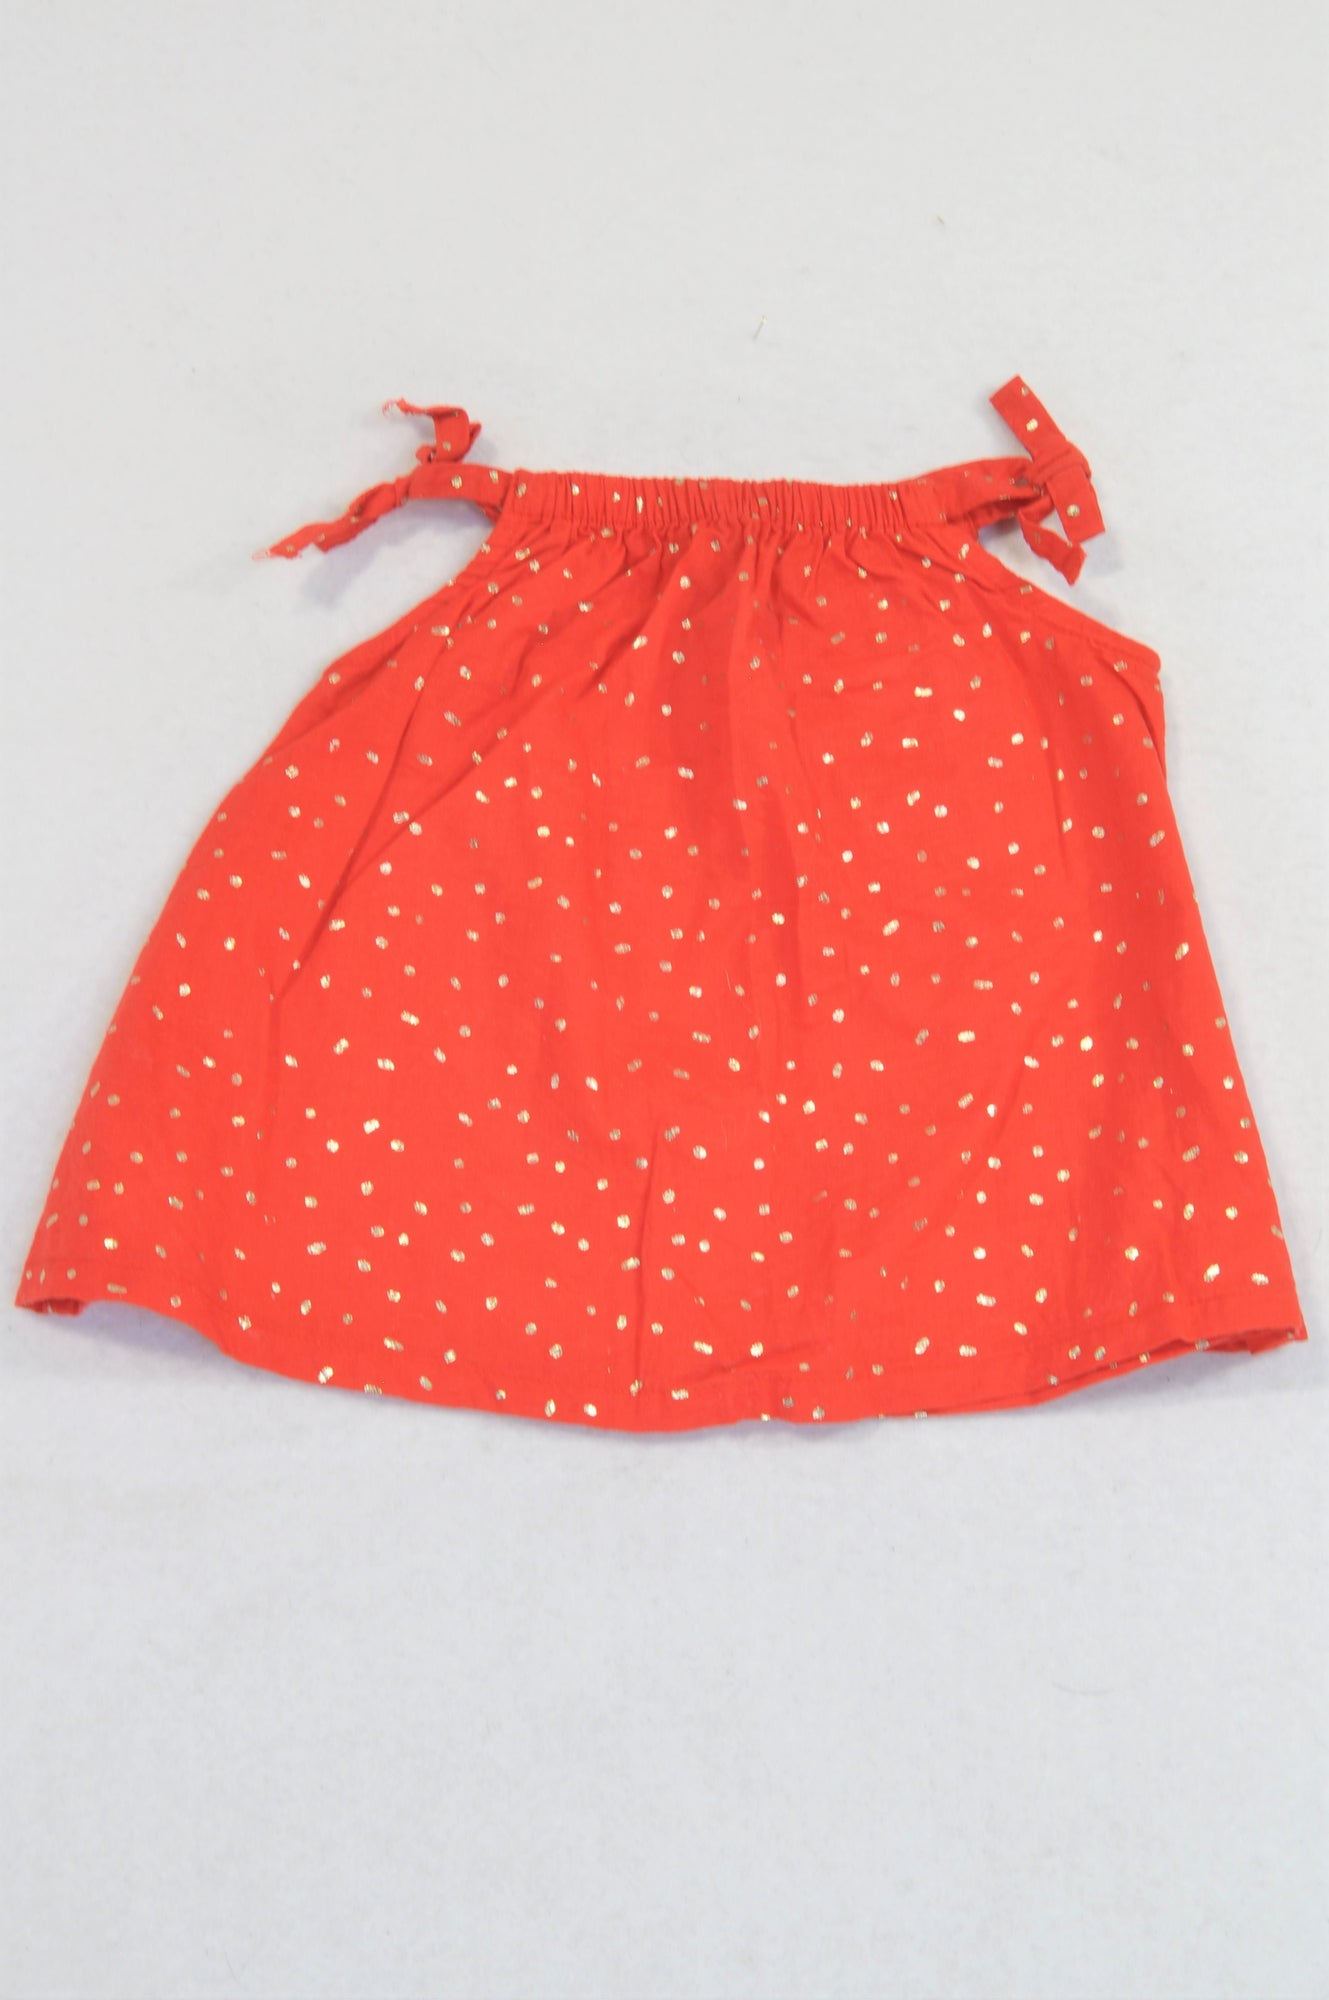 Woolworths Gold Confetti Red Blouse & Grey Cropped Leggings Outfit Girls 0-3 months